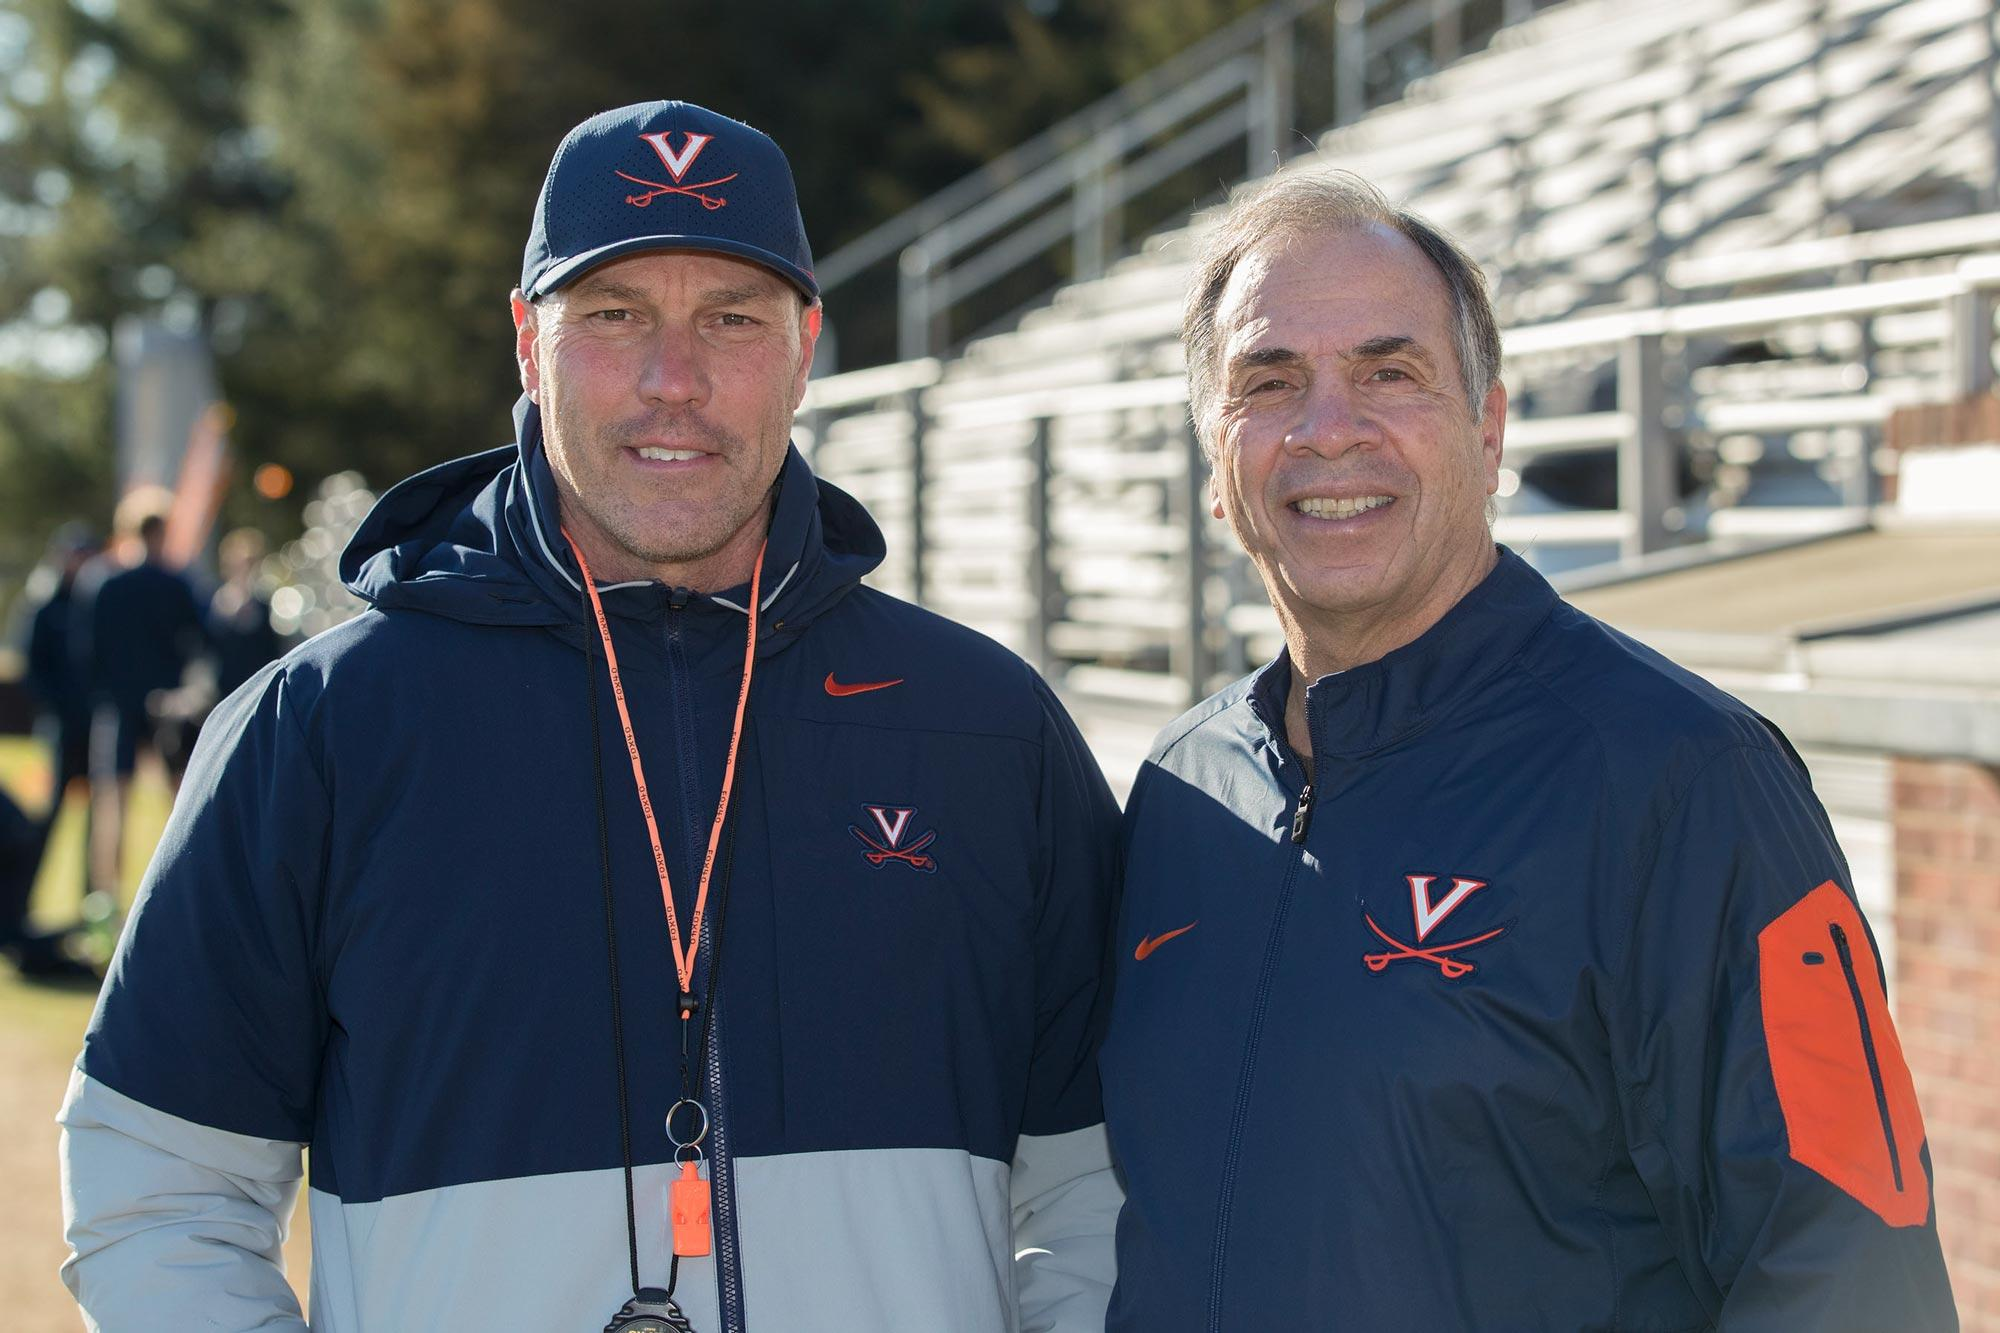 University of Virginia head soccer coach George Gelnovatch and and former coach Bruce Arena